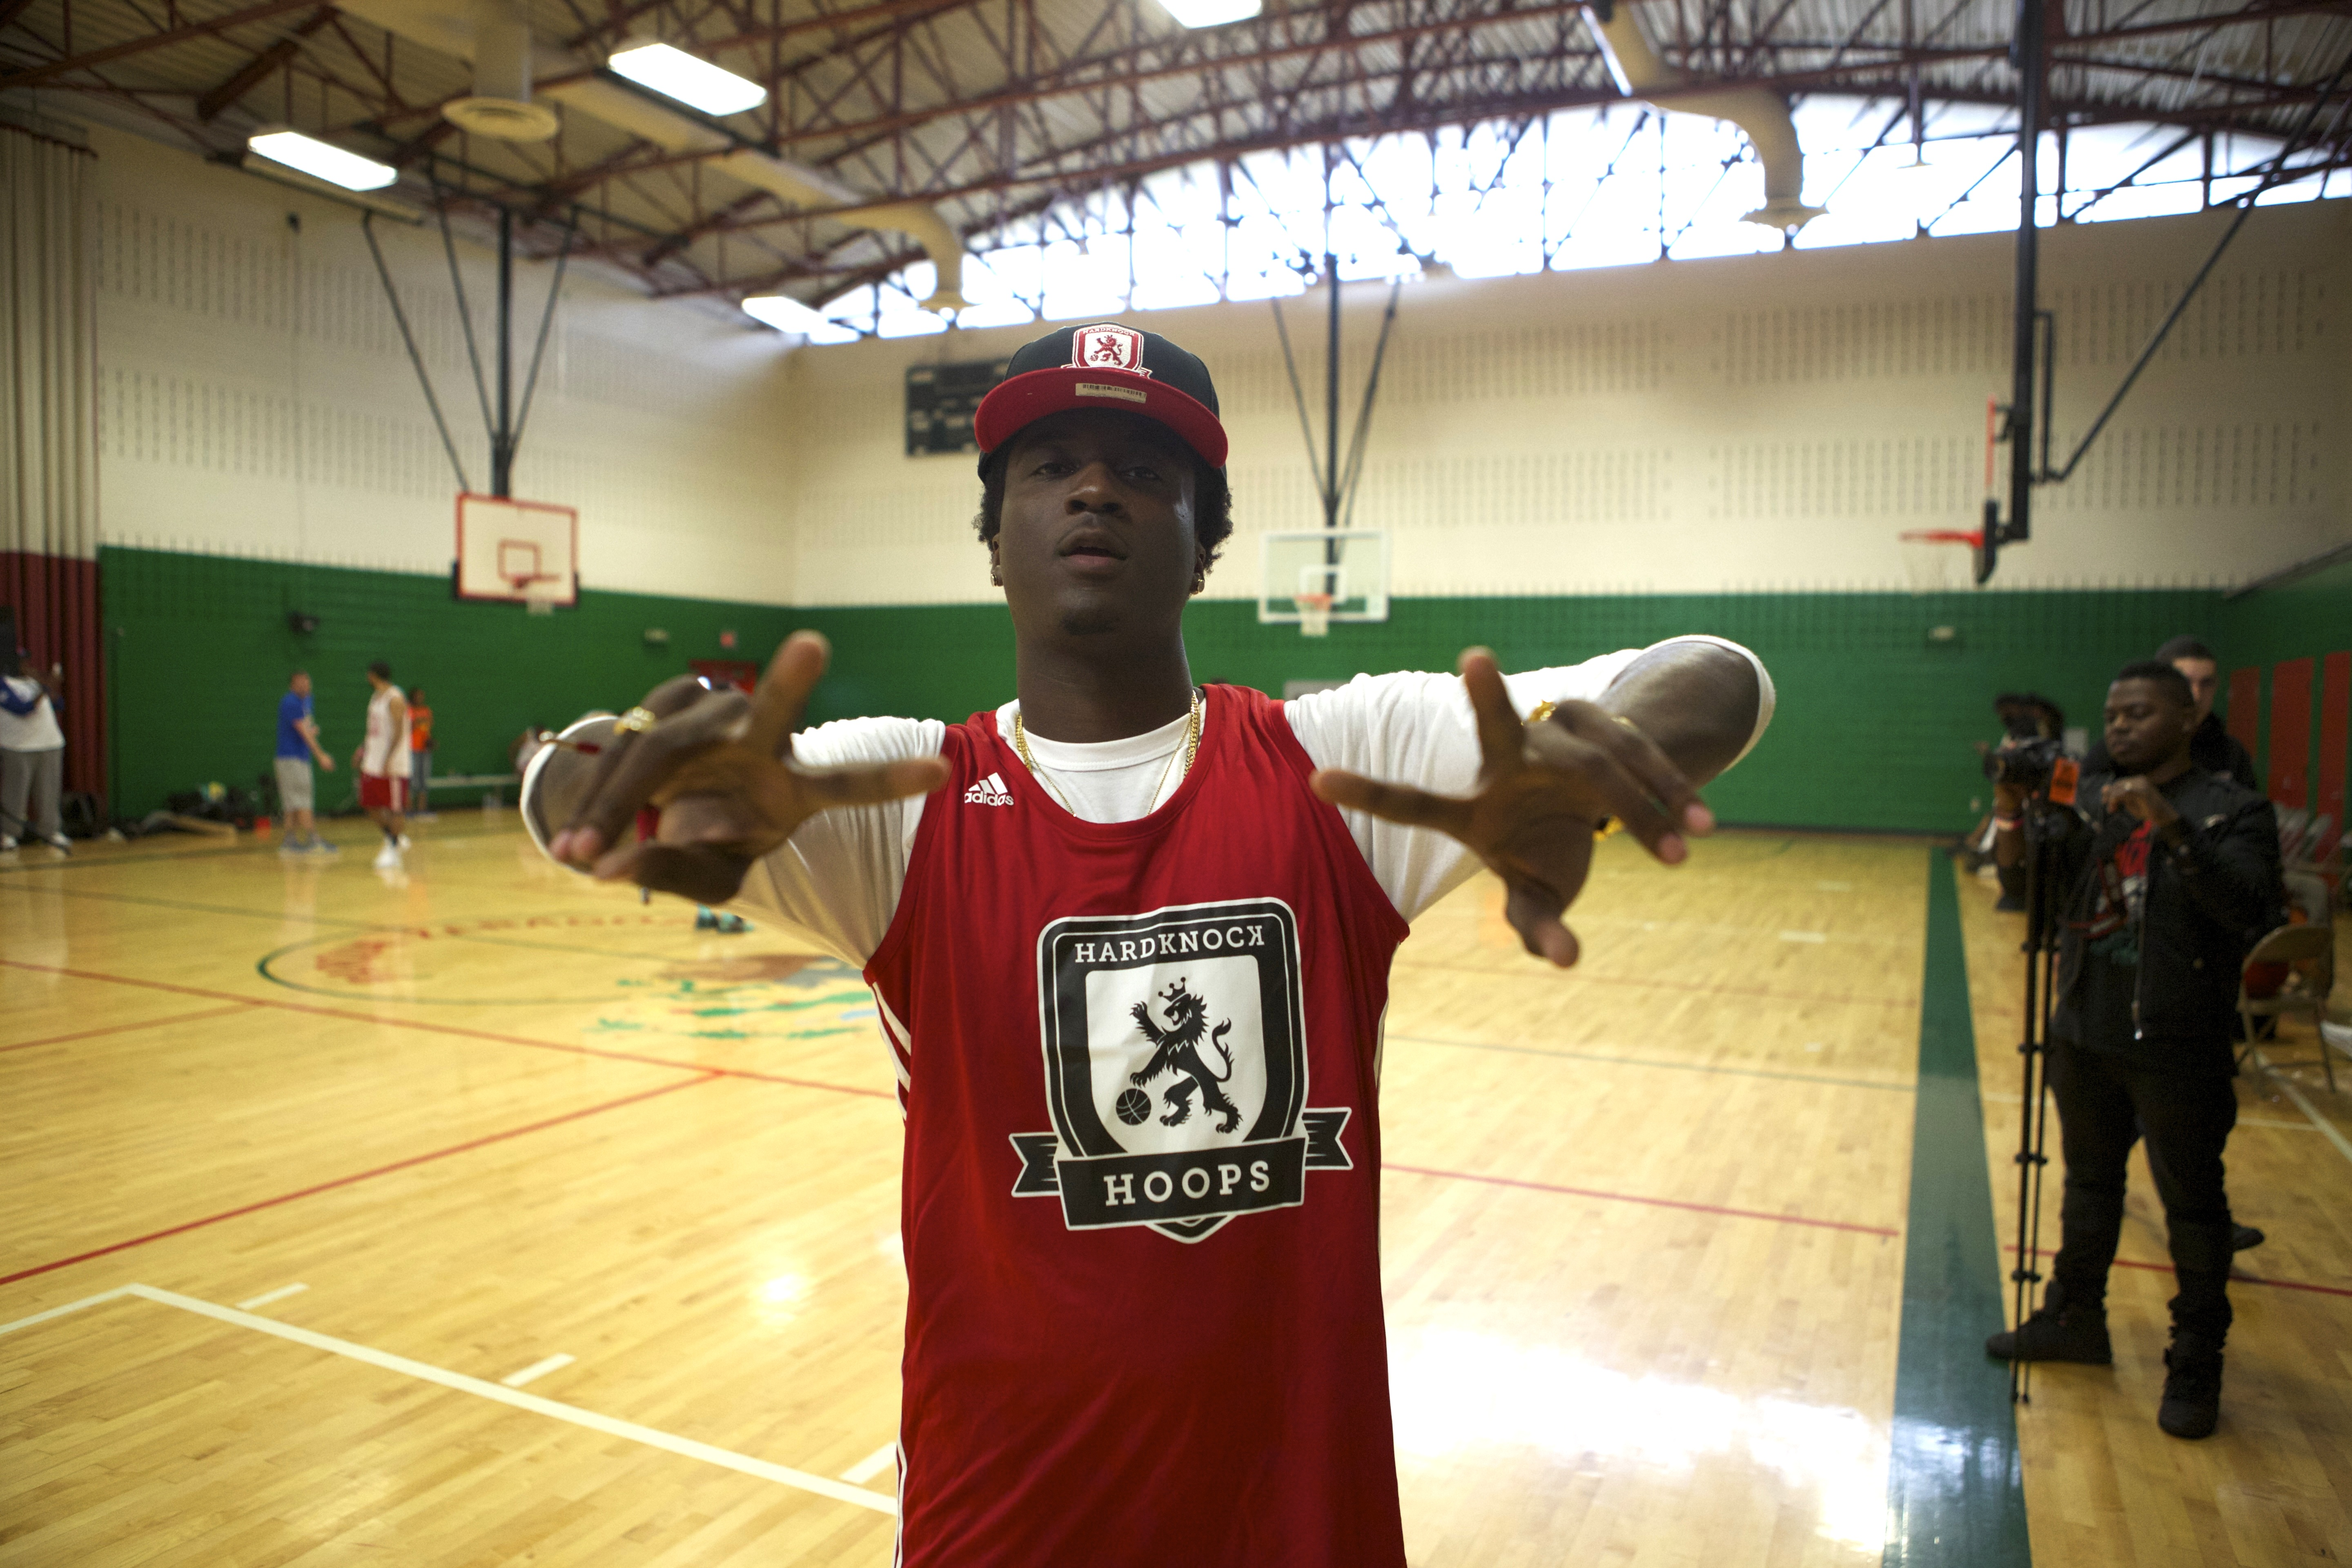 K Camp Hard Knock Hoops Adidas Jersey New Era Cap